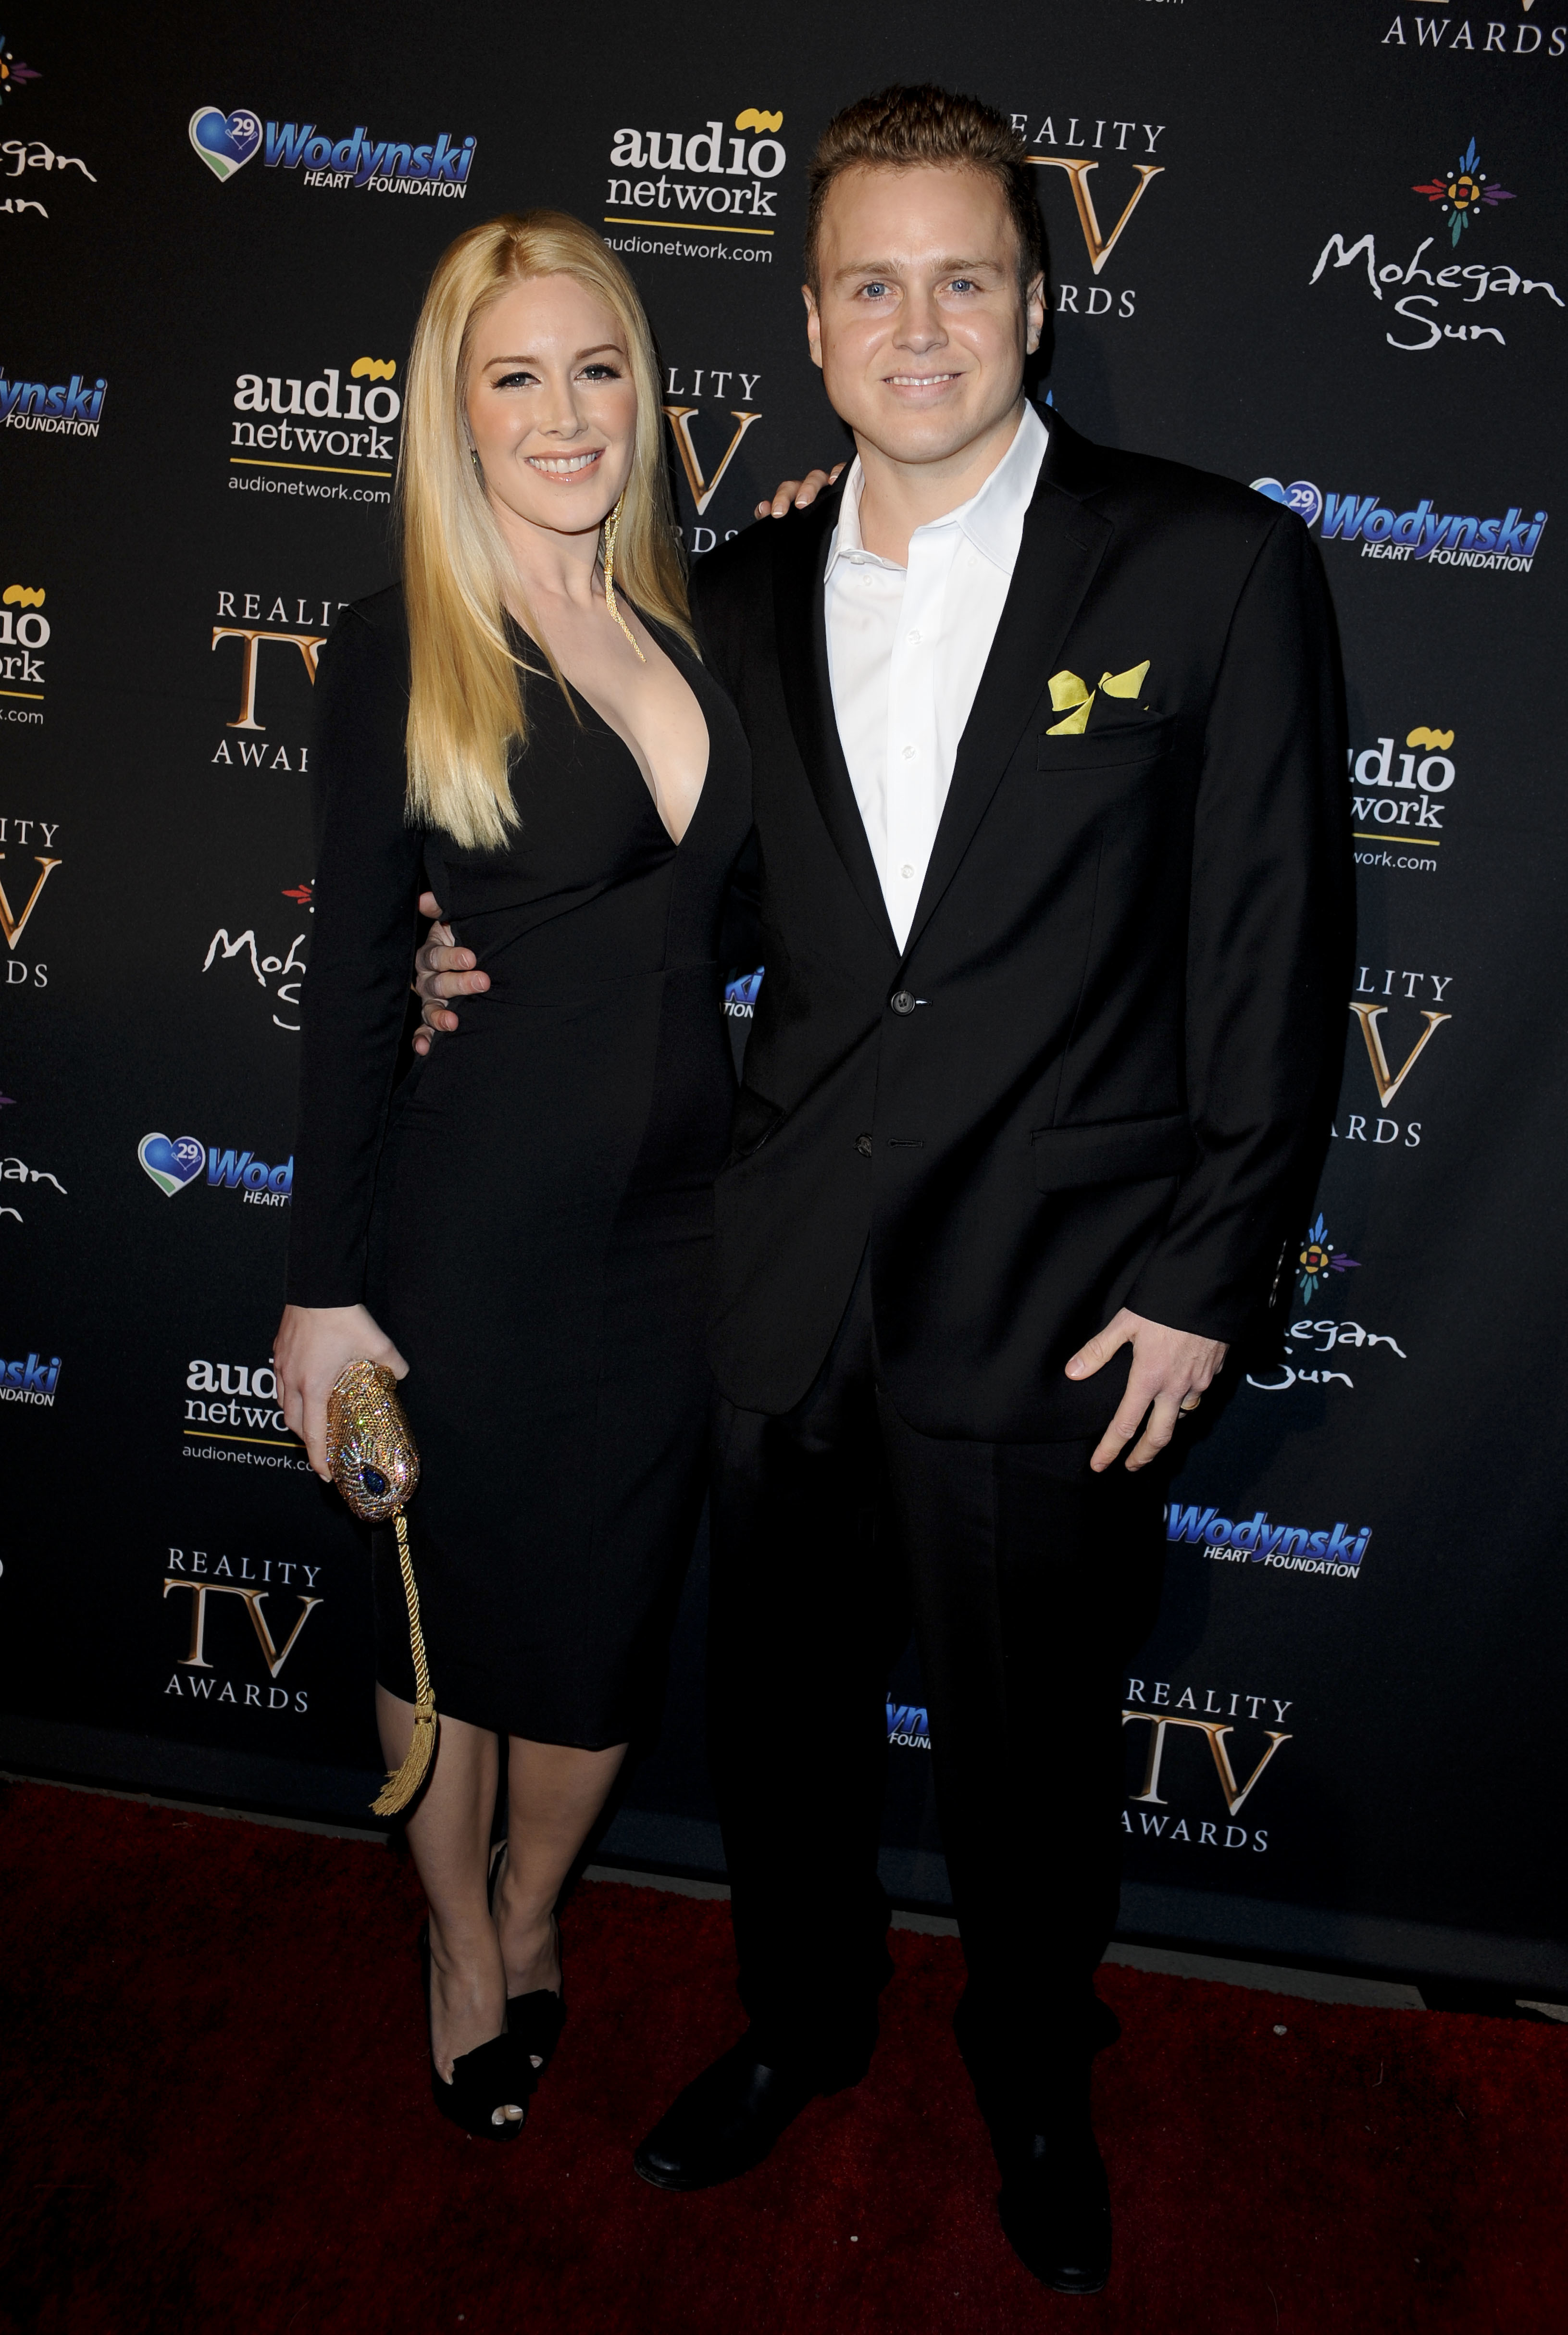 Heidi Montag wants to start a family